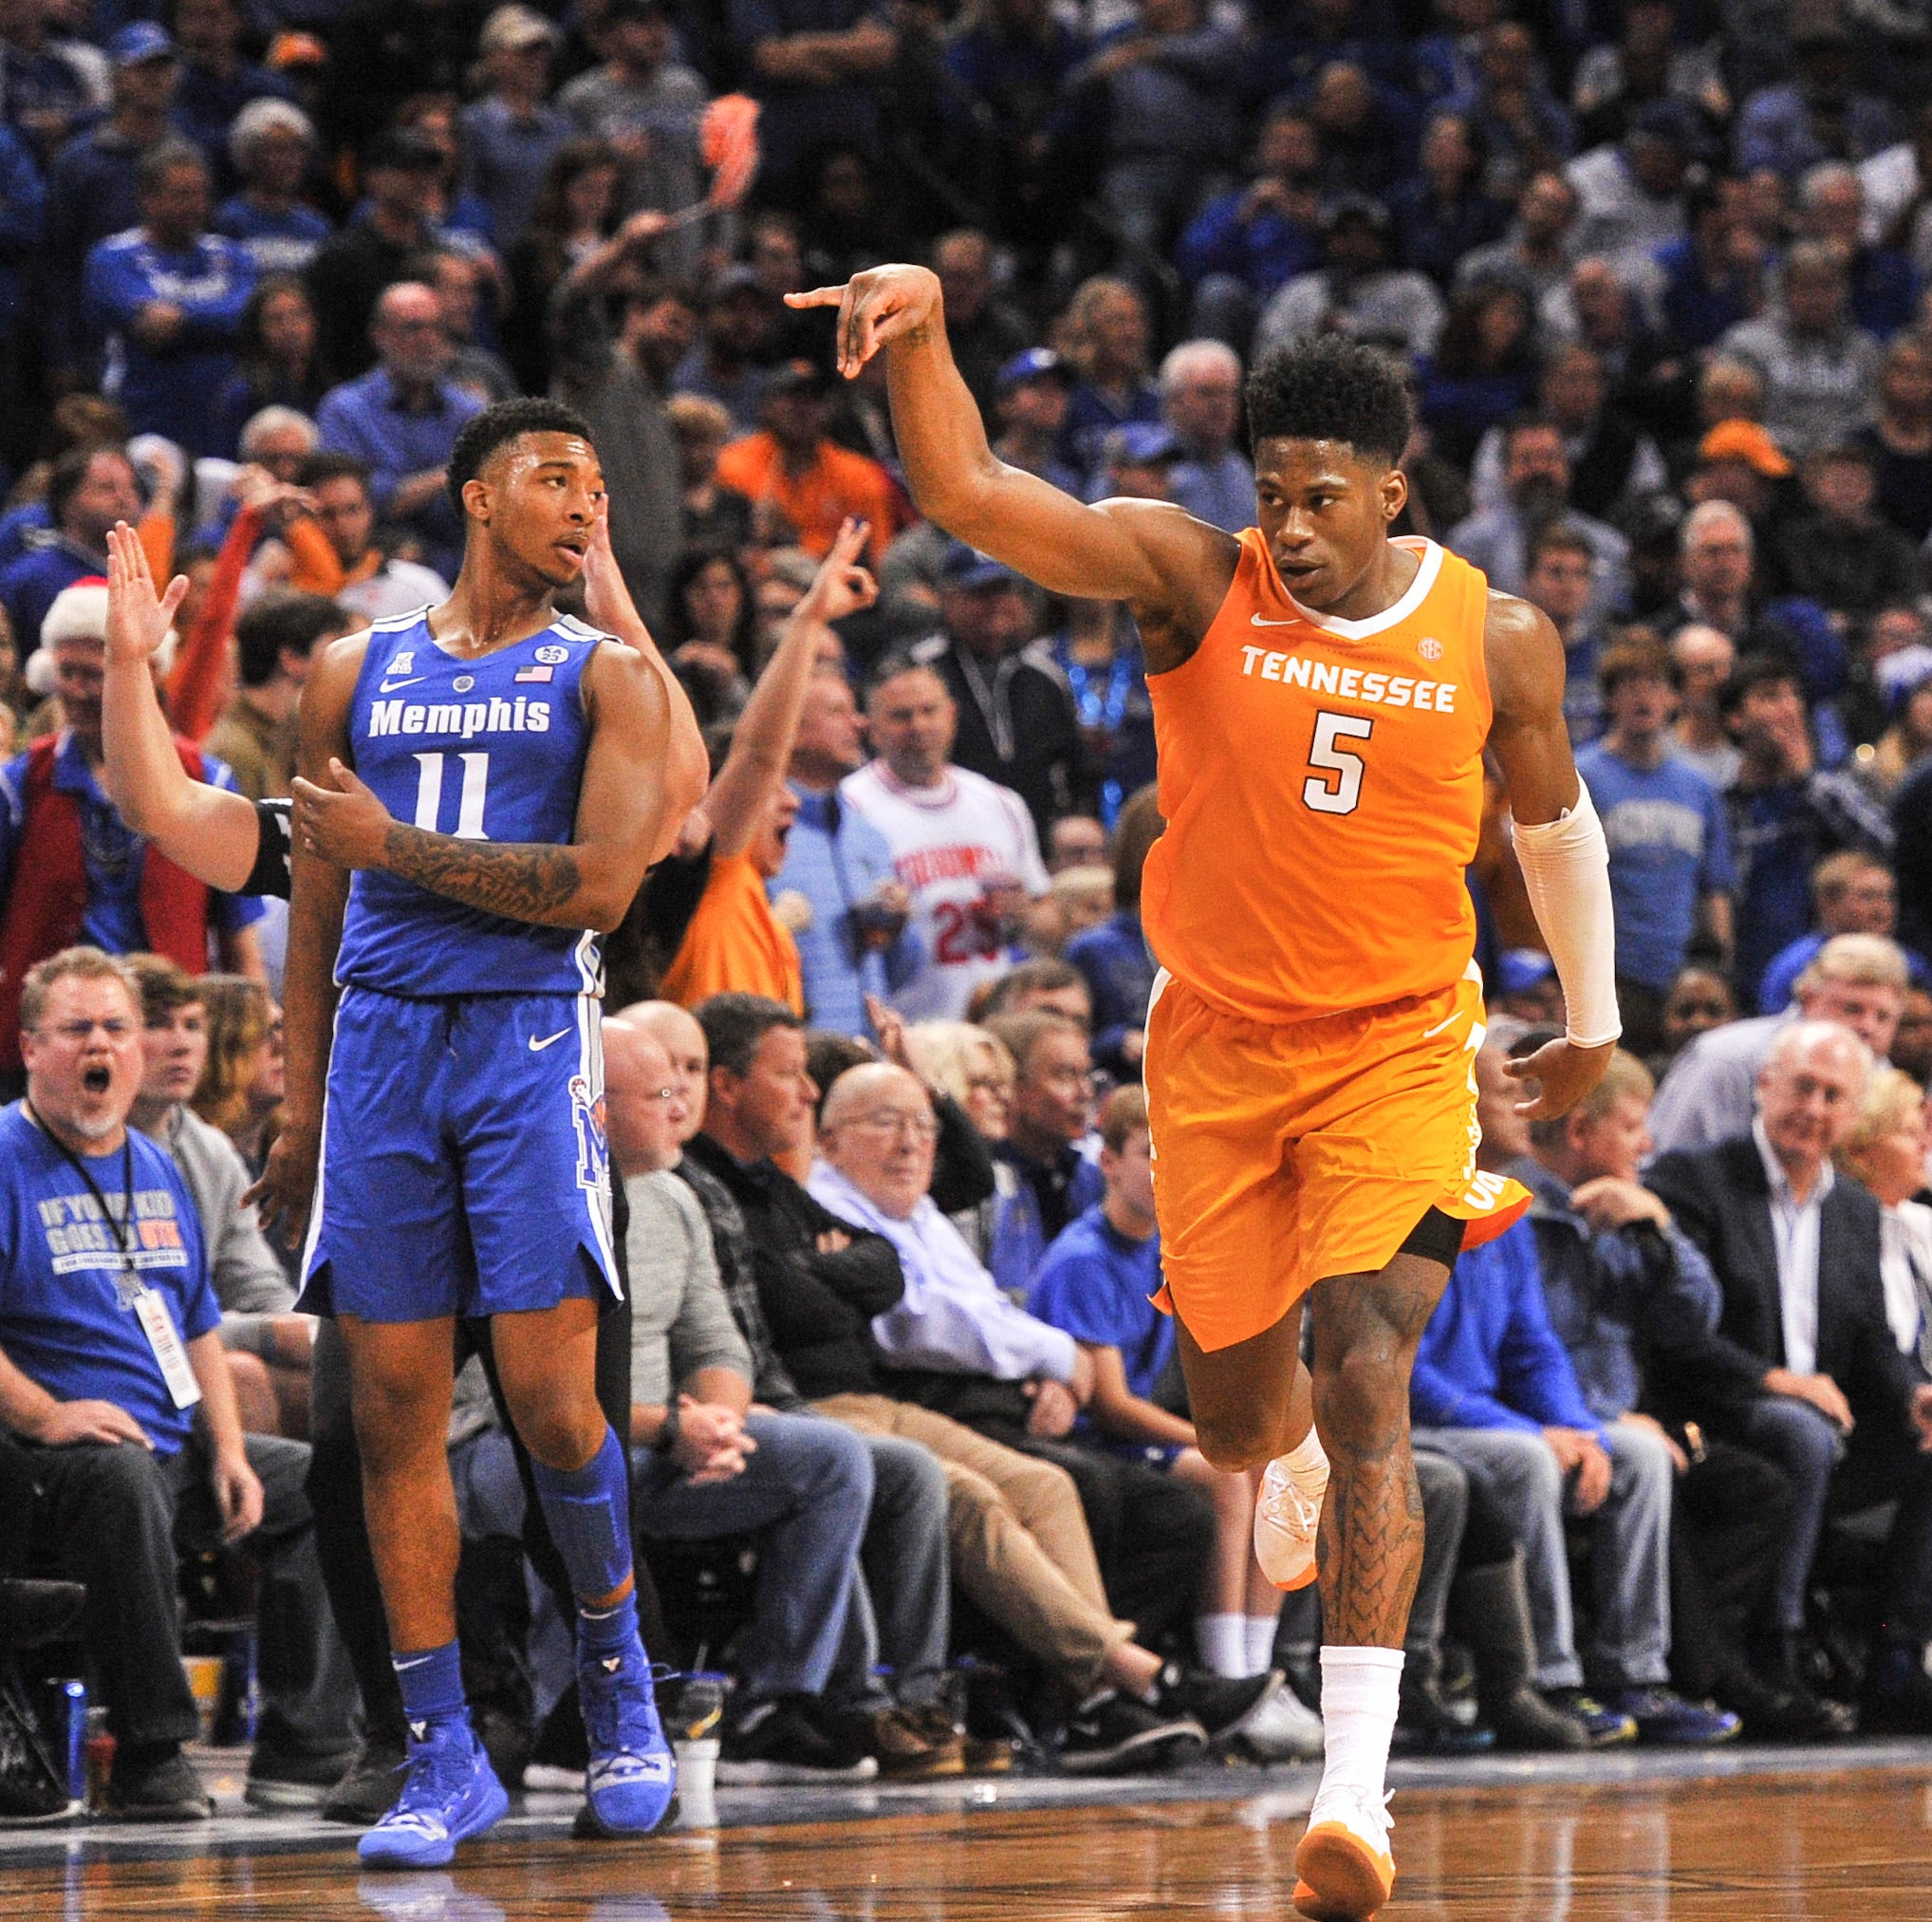 UT Vols basketball ranked No. 3 by AP, No. 4 by coaches